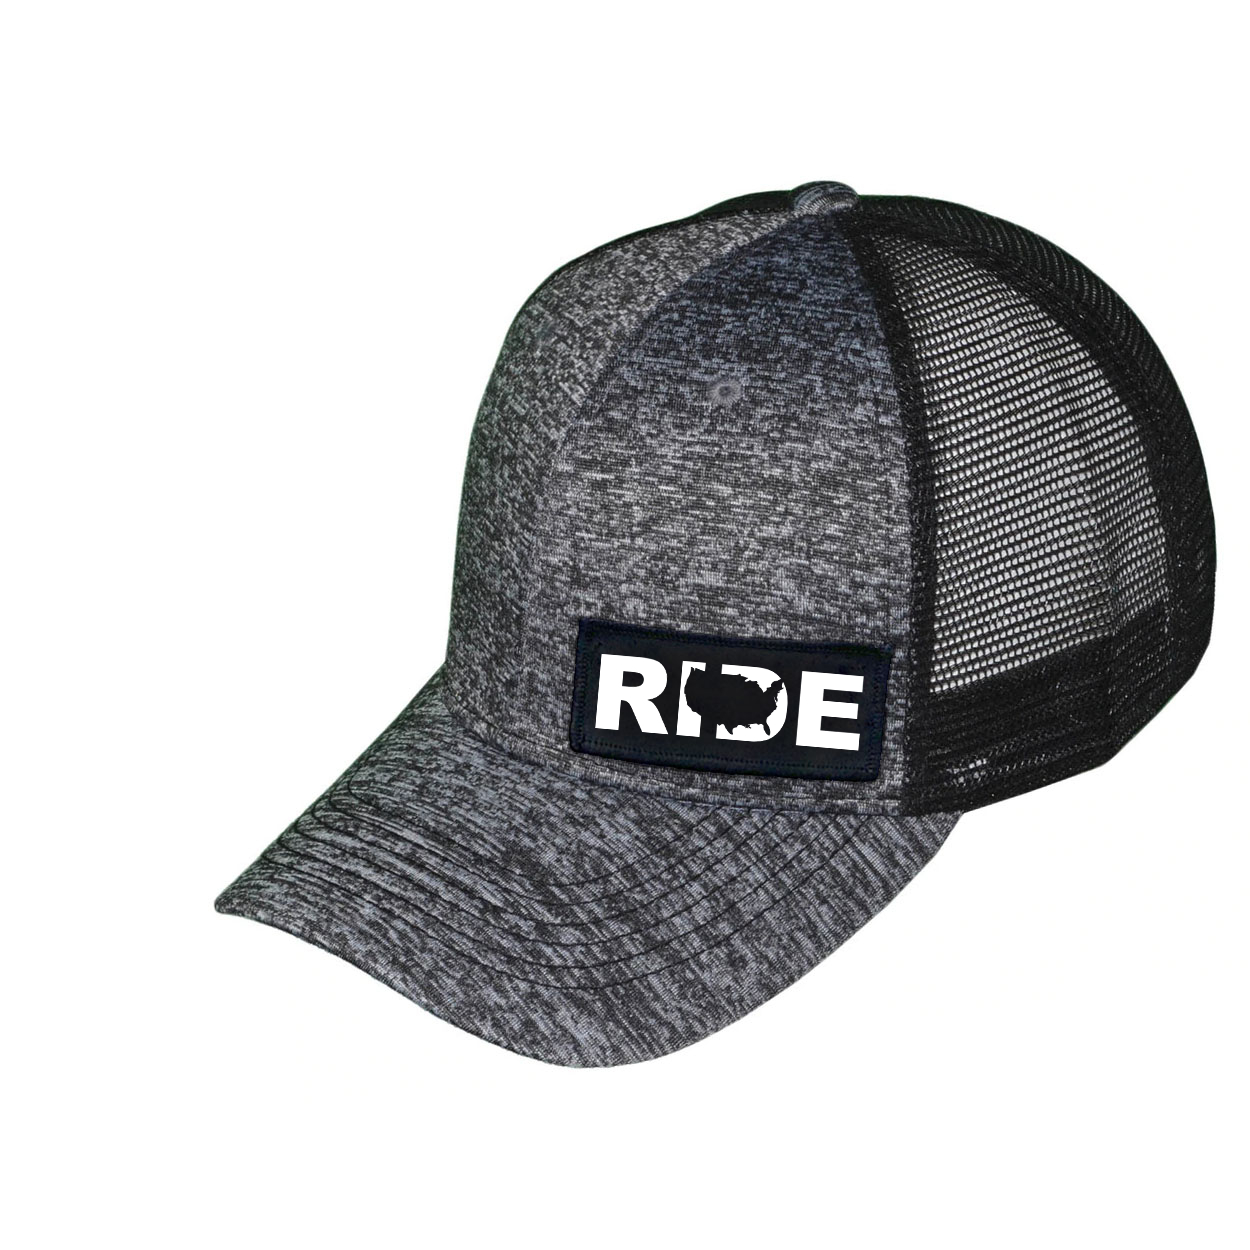 Ride United States Night Out Woven Patch Melange Snapback Trucker Hat Gray/Black (White Logo)